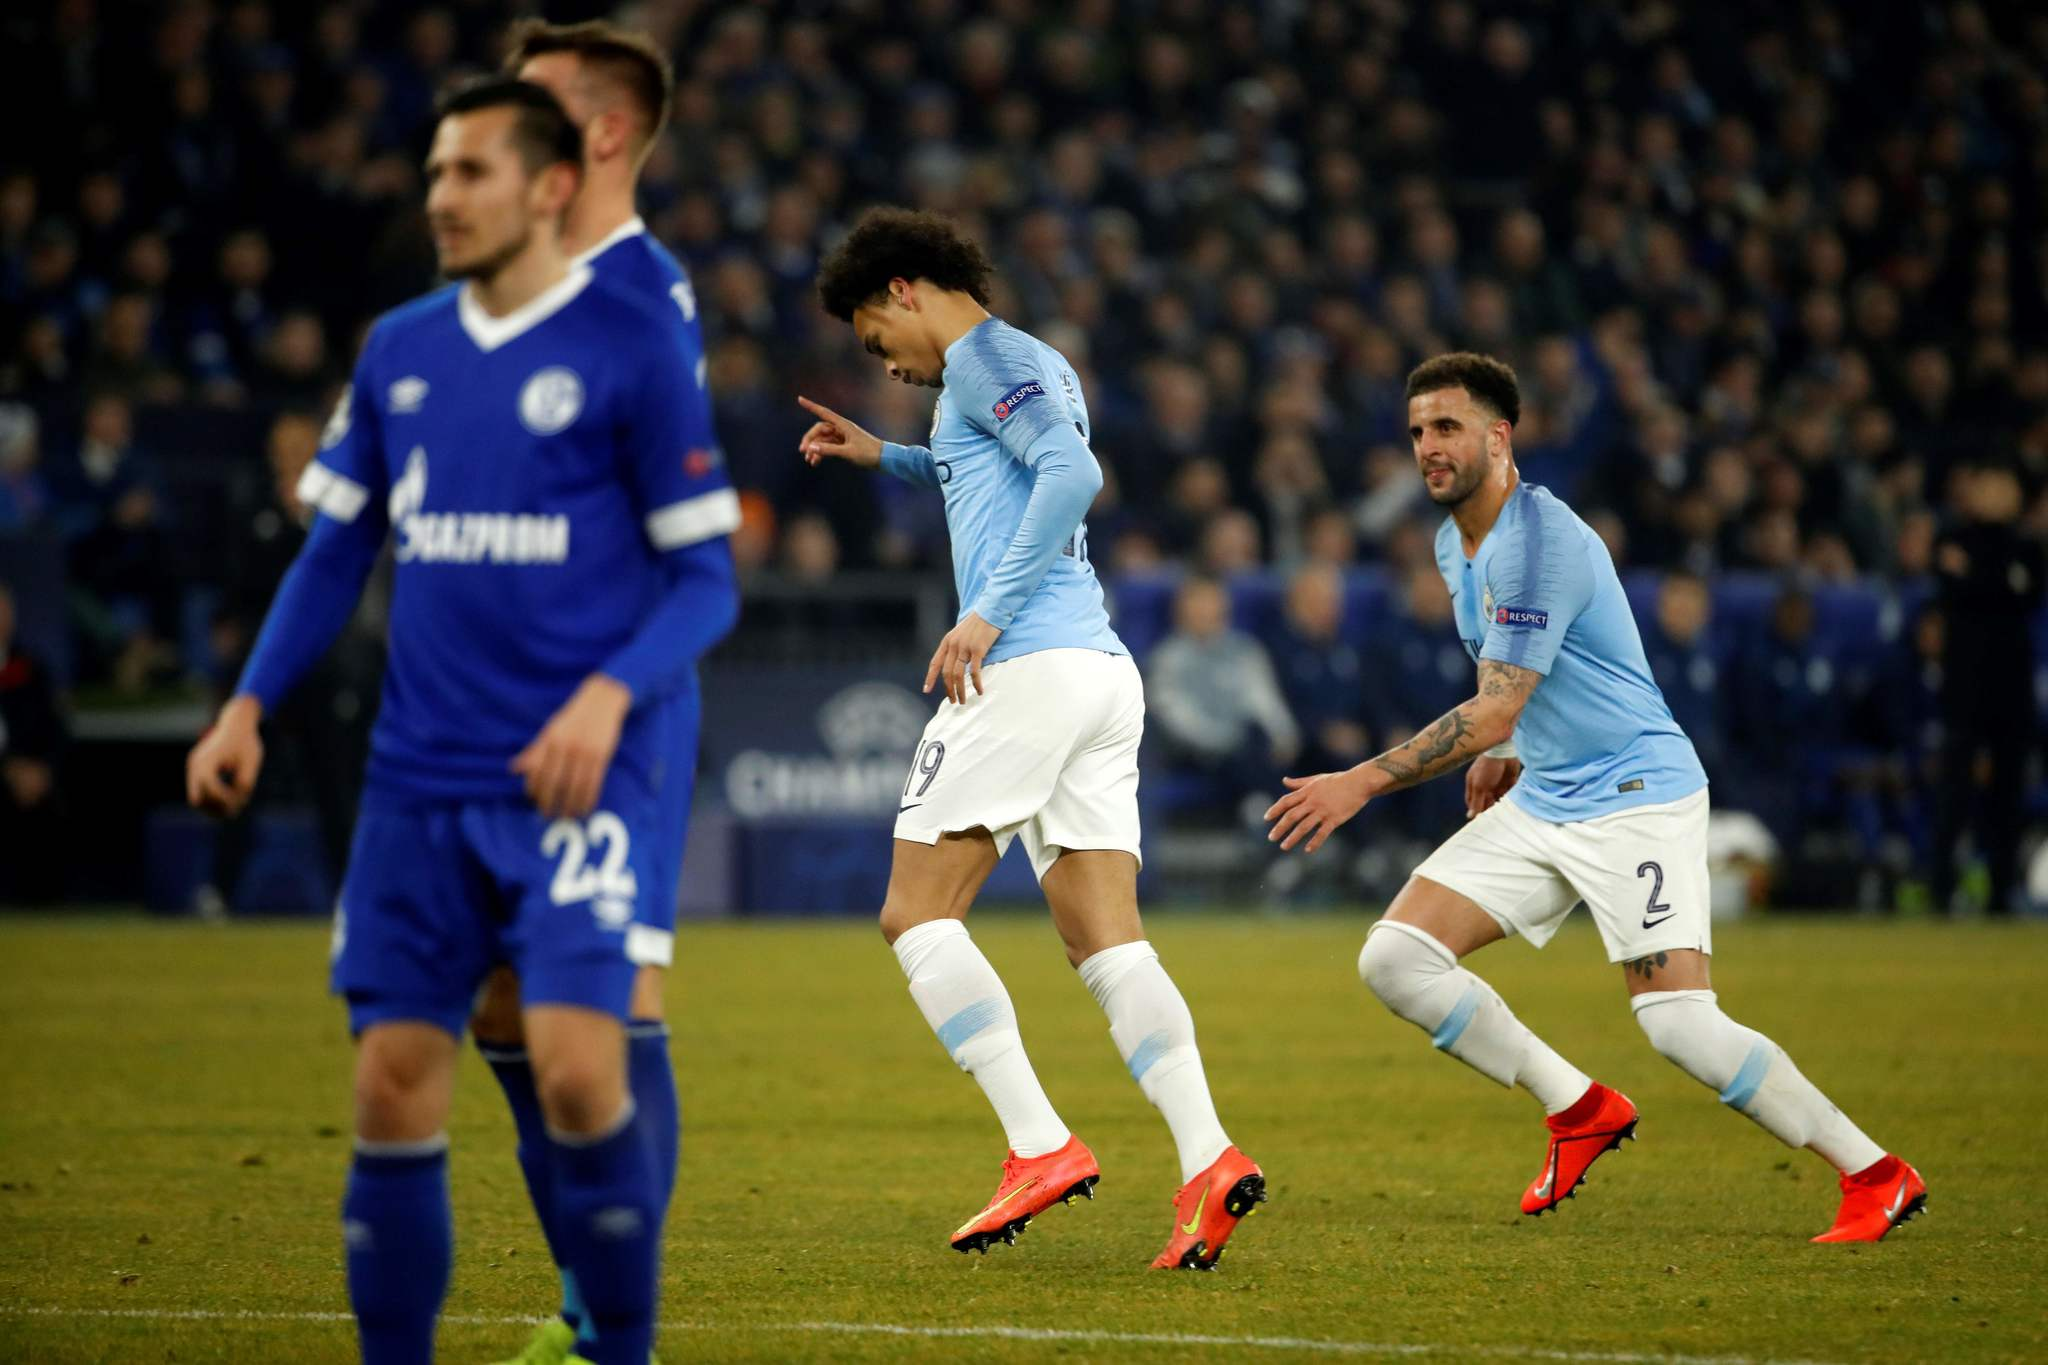 Manchester Citys German midfielder Leroy <HIT>Sane</HIT> (C) celebrates after scoring a goal during the UEFA Champions League round of 16 first leg football match between Schalke 04 and Manchester City on February 20, 2019 in Gelsenkirchen, Germany. (Photo by Odd ANDERSEN / AFP)